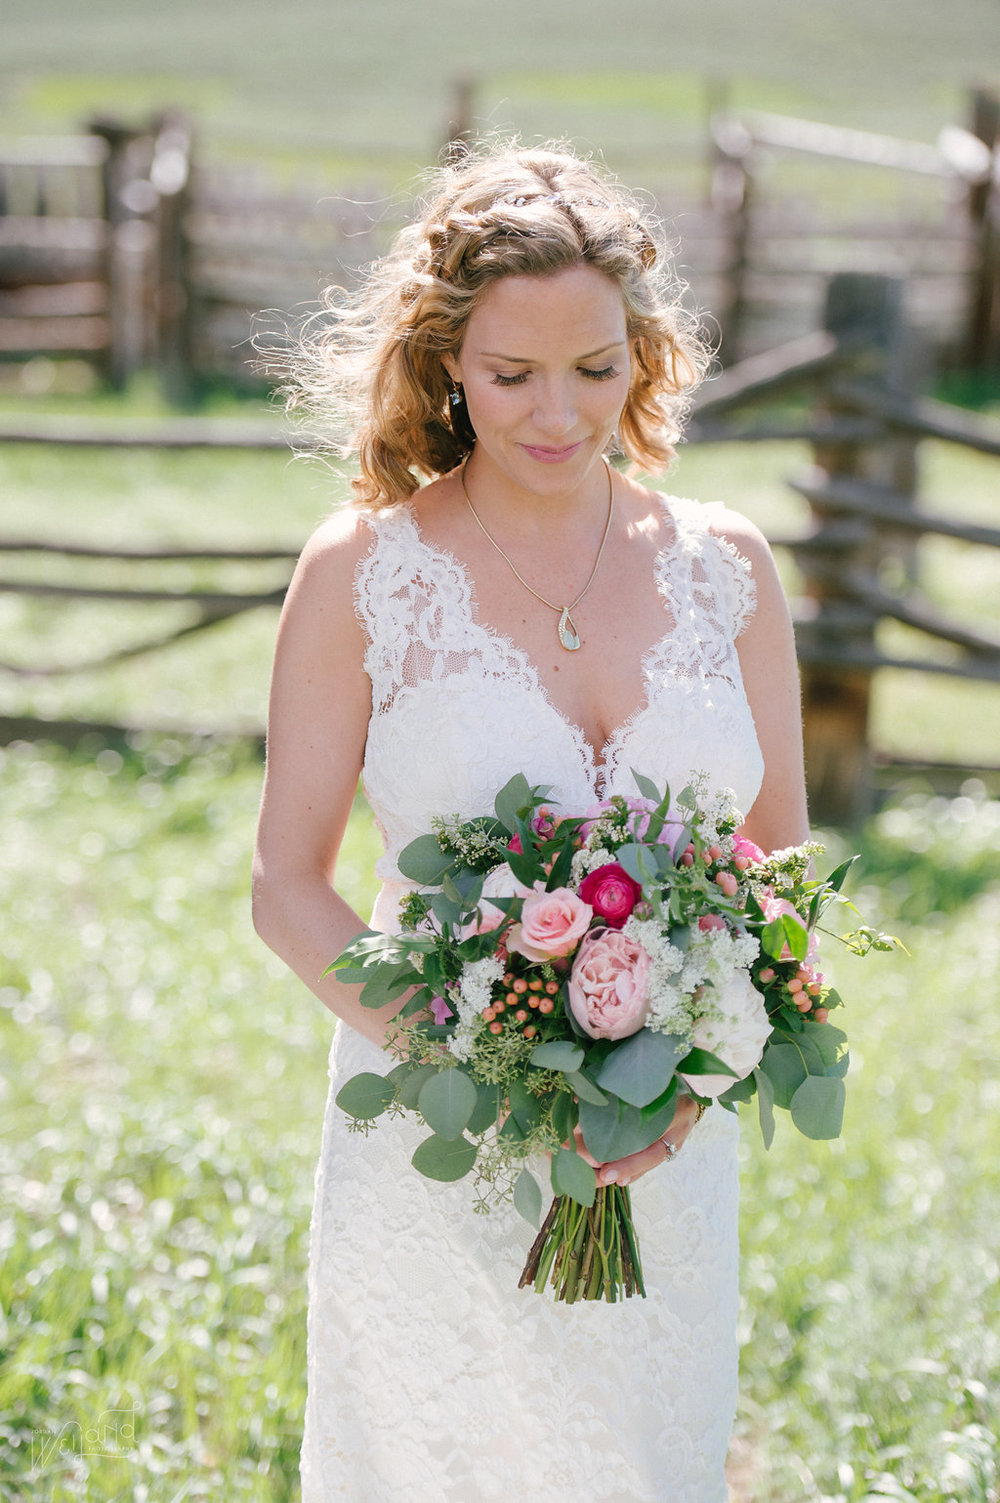 Kate | June 2017 | Devil's Thumb Ranch | Tabernash, Colorado |  Jordan Weiland Photography